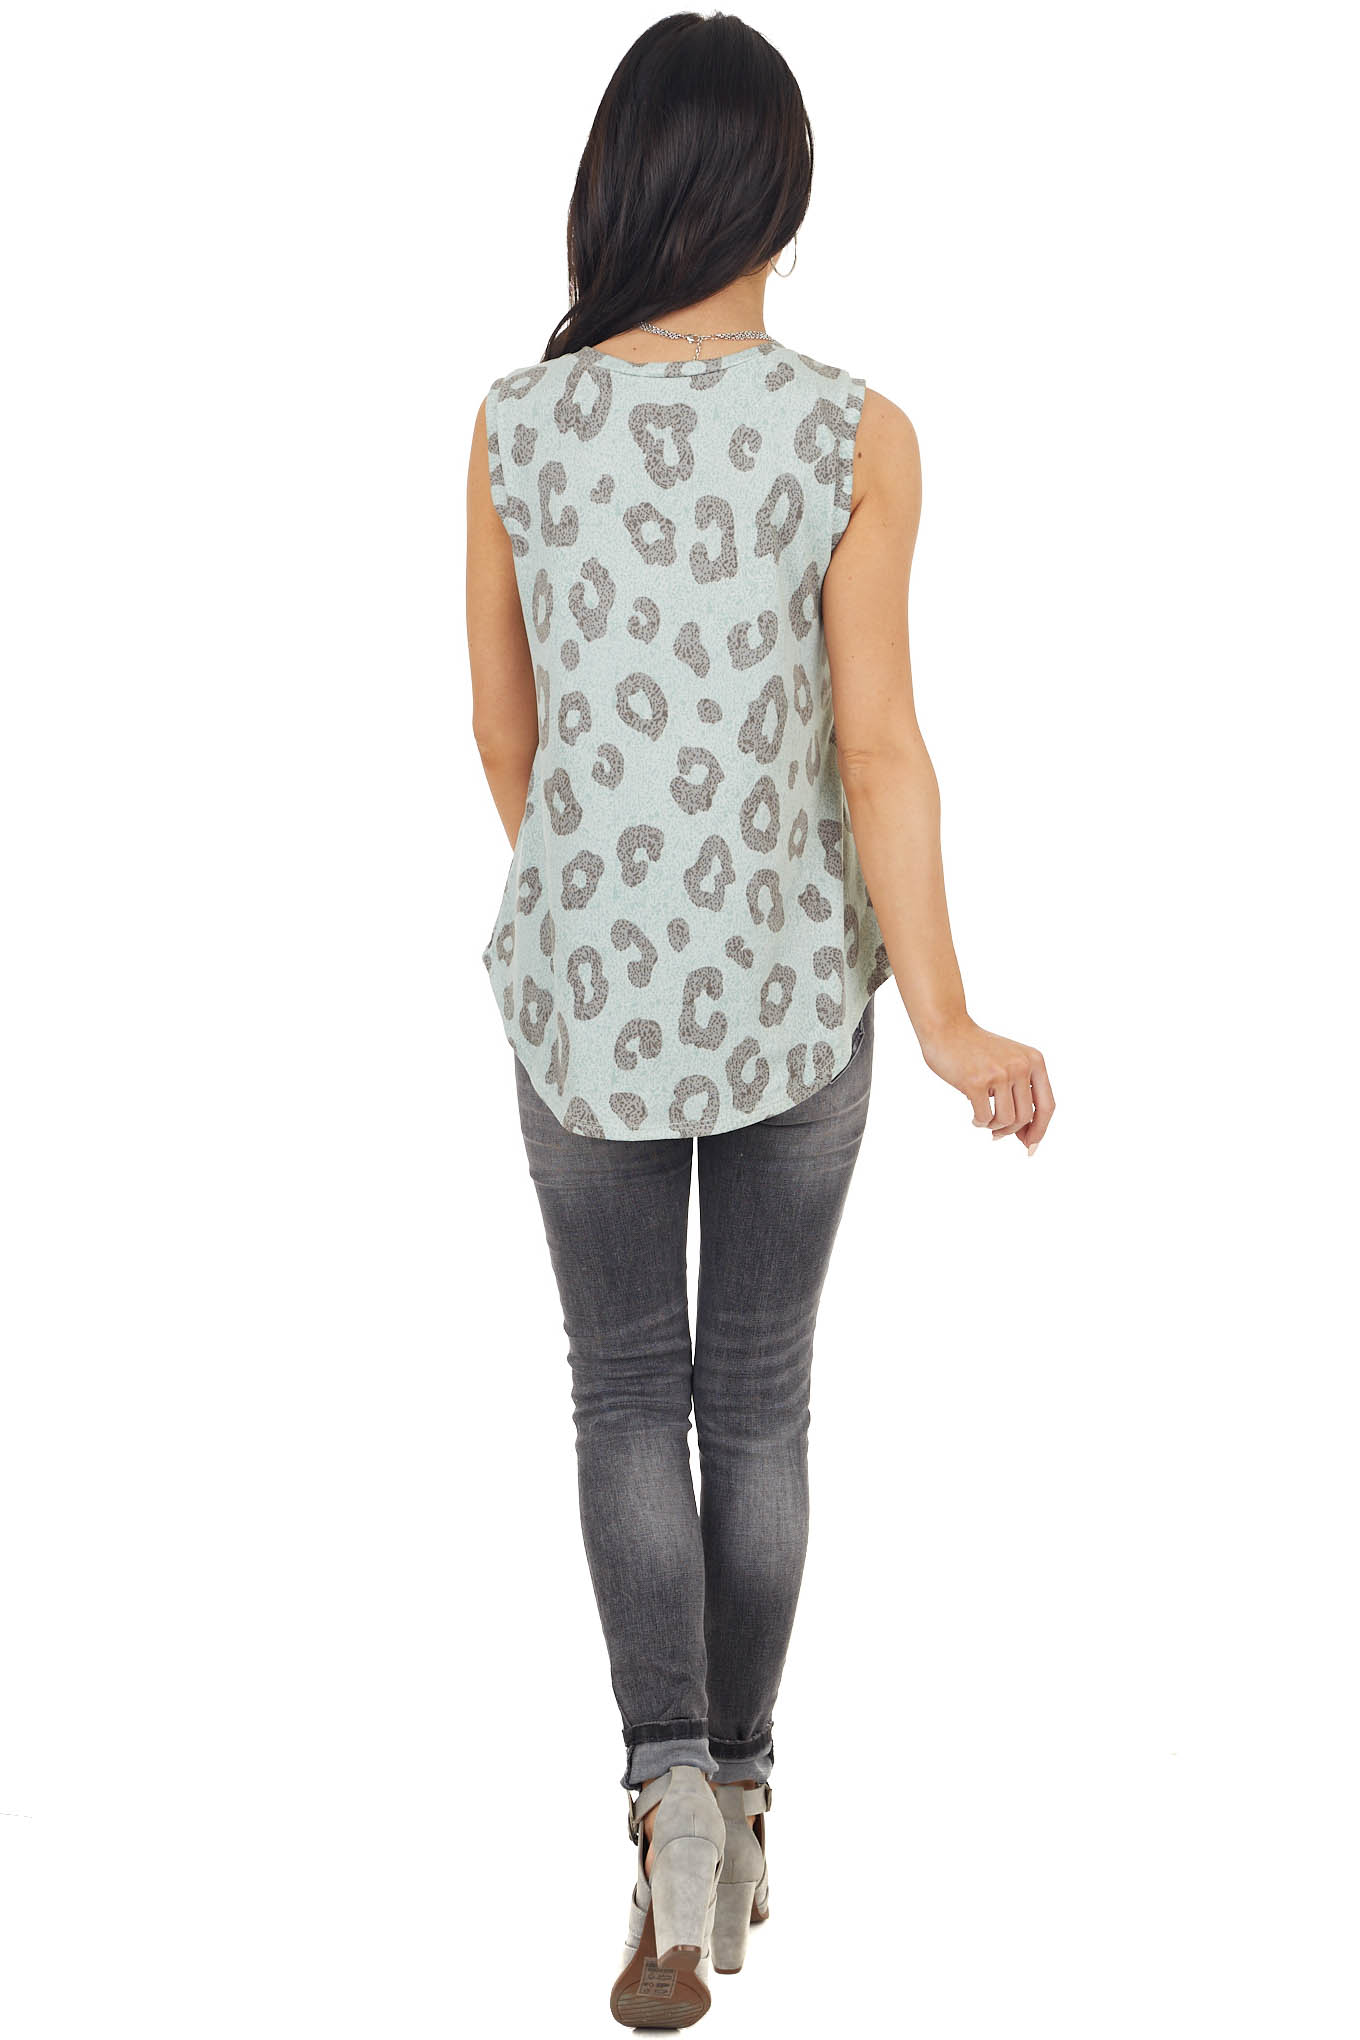 Mint and Heather Grey Leopard Sleeveless Super Soft Knit Top